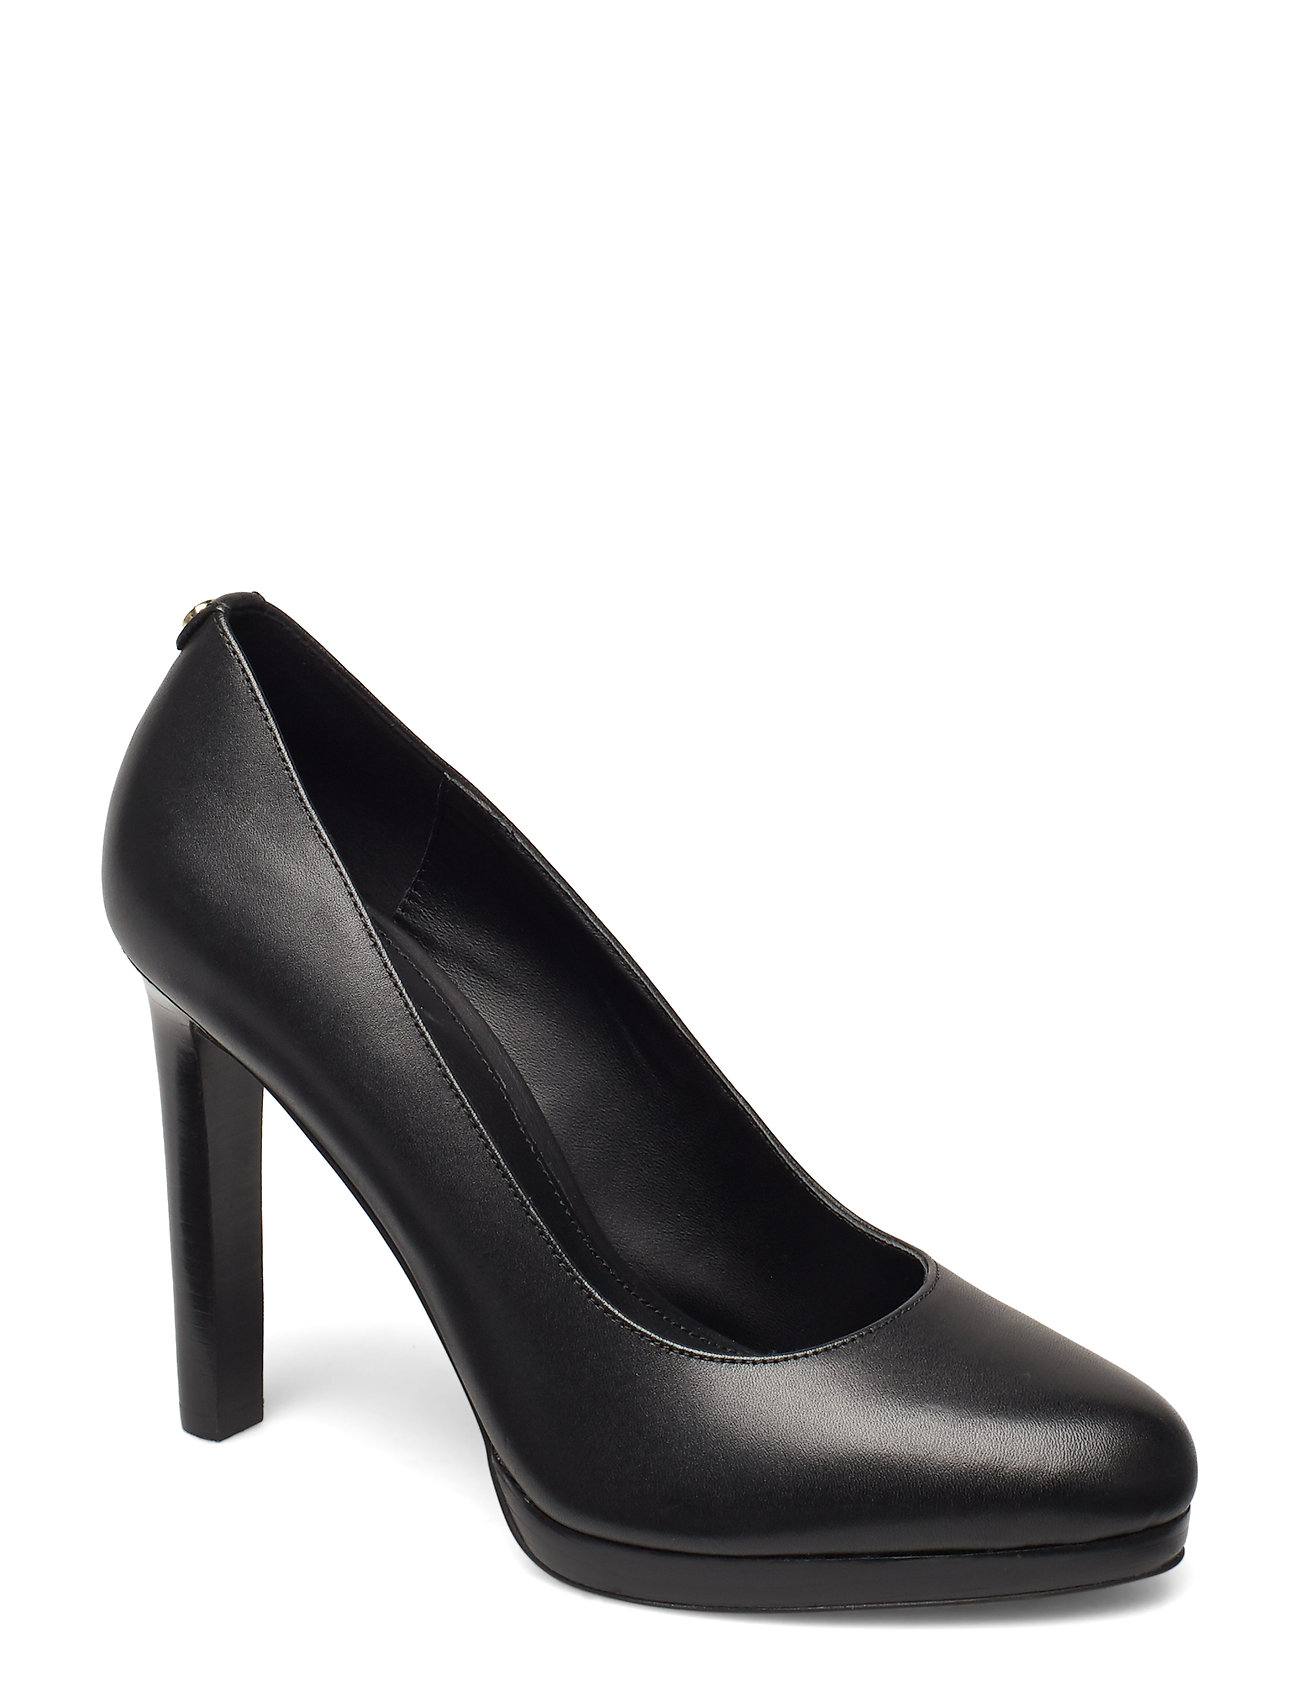 Michael Kors Shoes ETHEL PUMP - BLACK